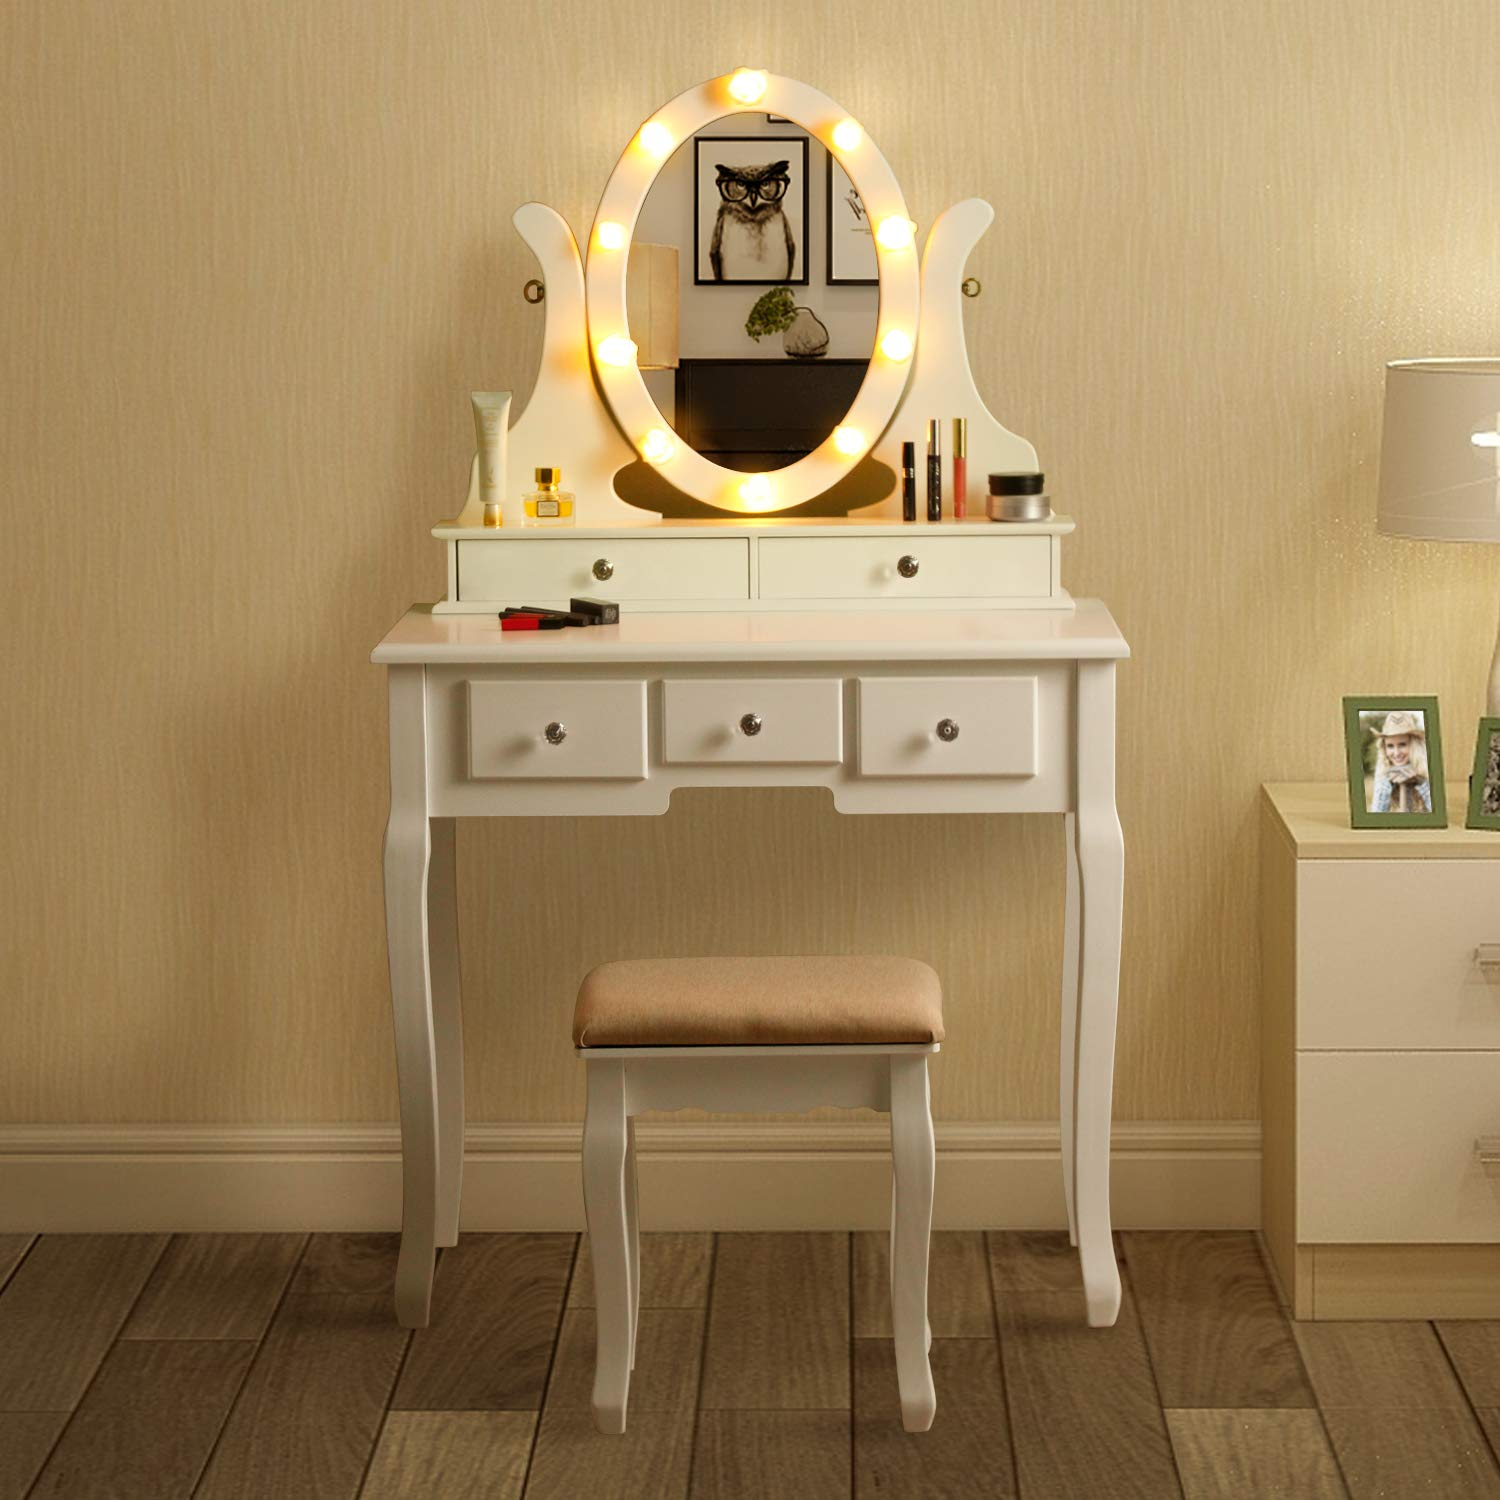 MAISMODA Vanity Table 10 LED Lights, 5 Drawers Makeup Dressing Desk with Cushioned Stool Set, White